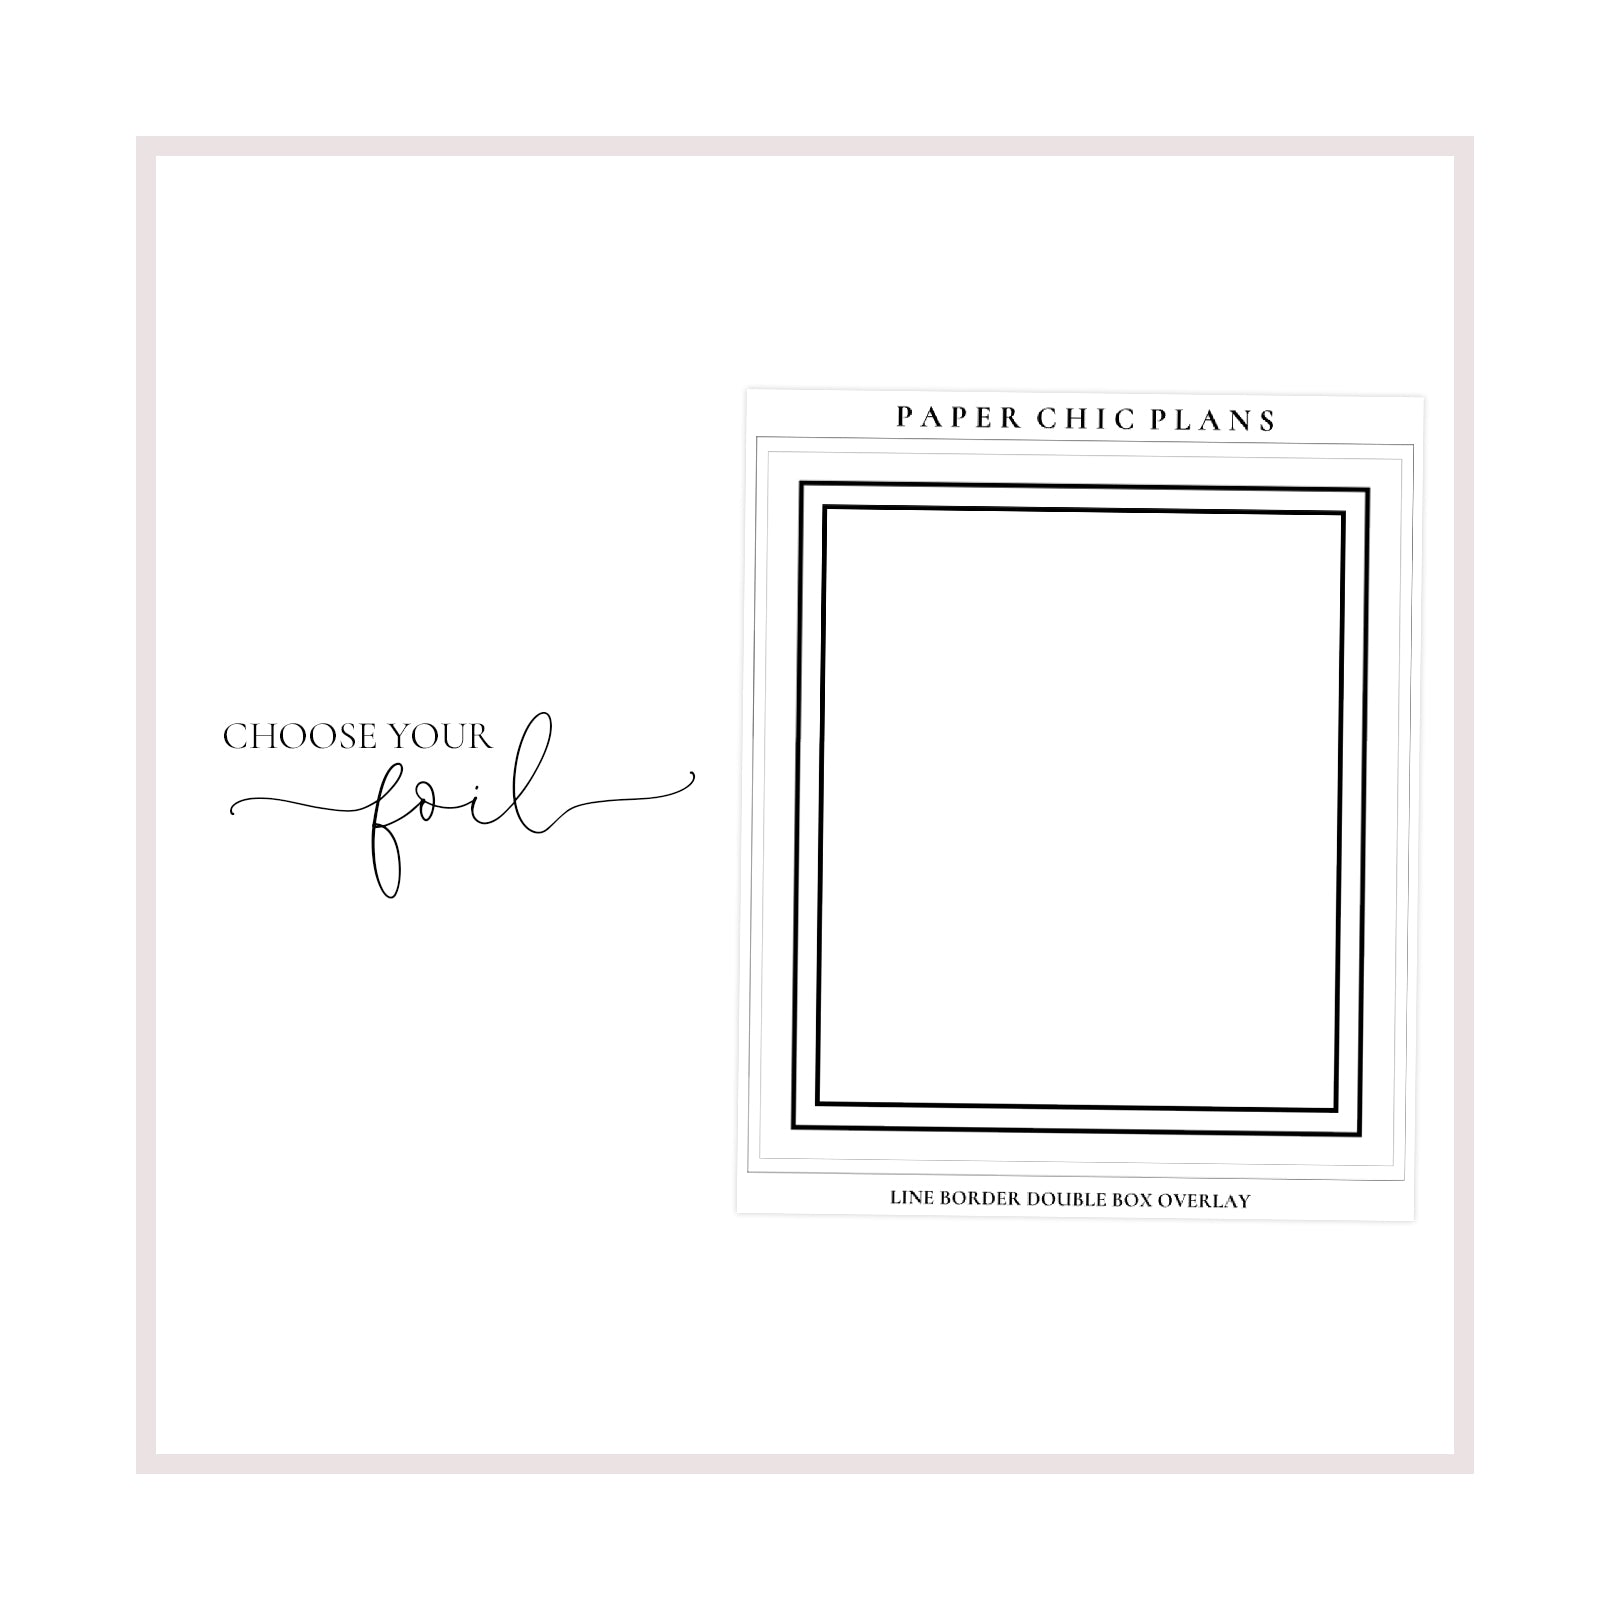 Line Border Double Box Overlay // Foiled - Paper Chic Plans